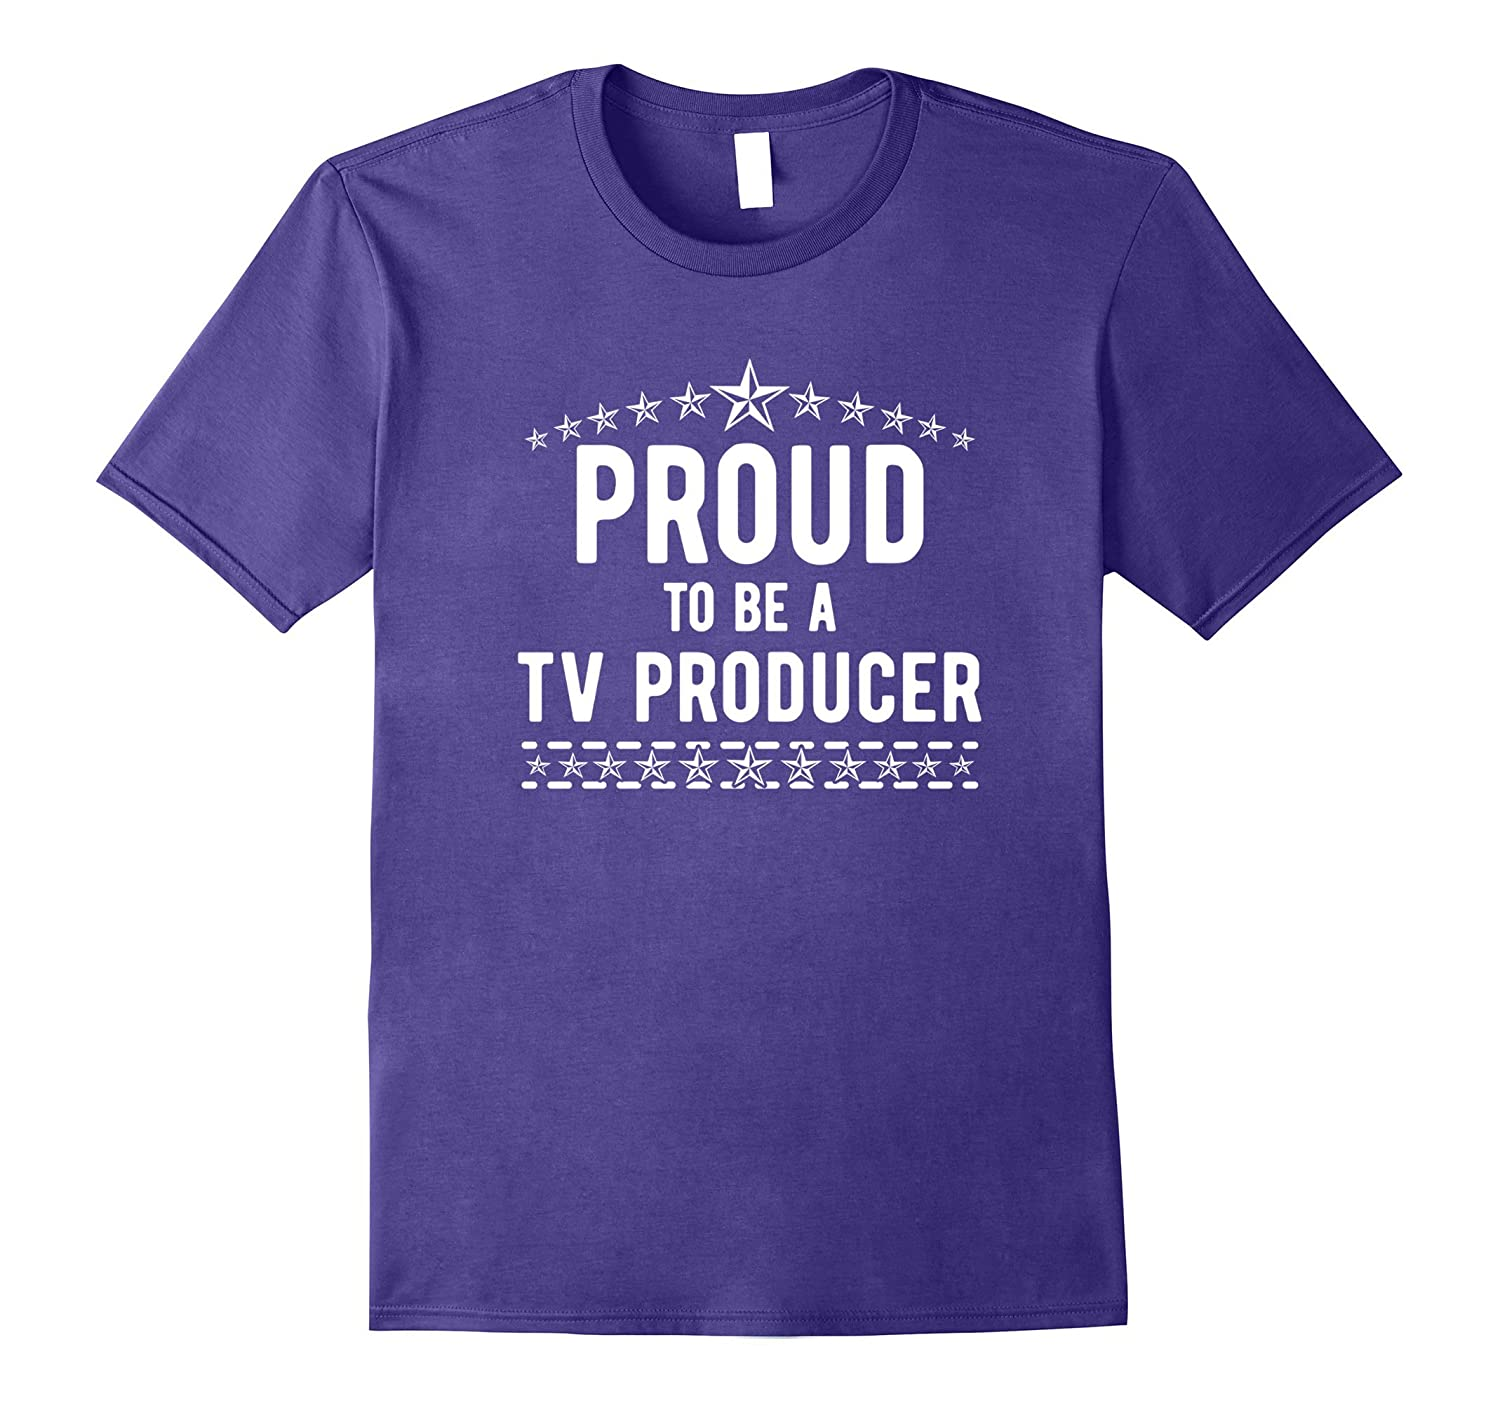 The Official Proud to Be a TV Producer T-Shirt-PL